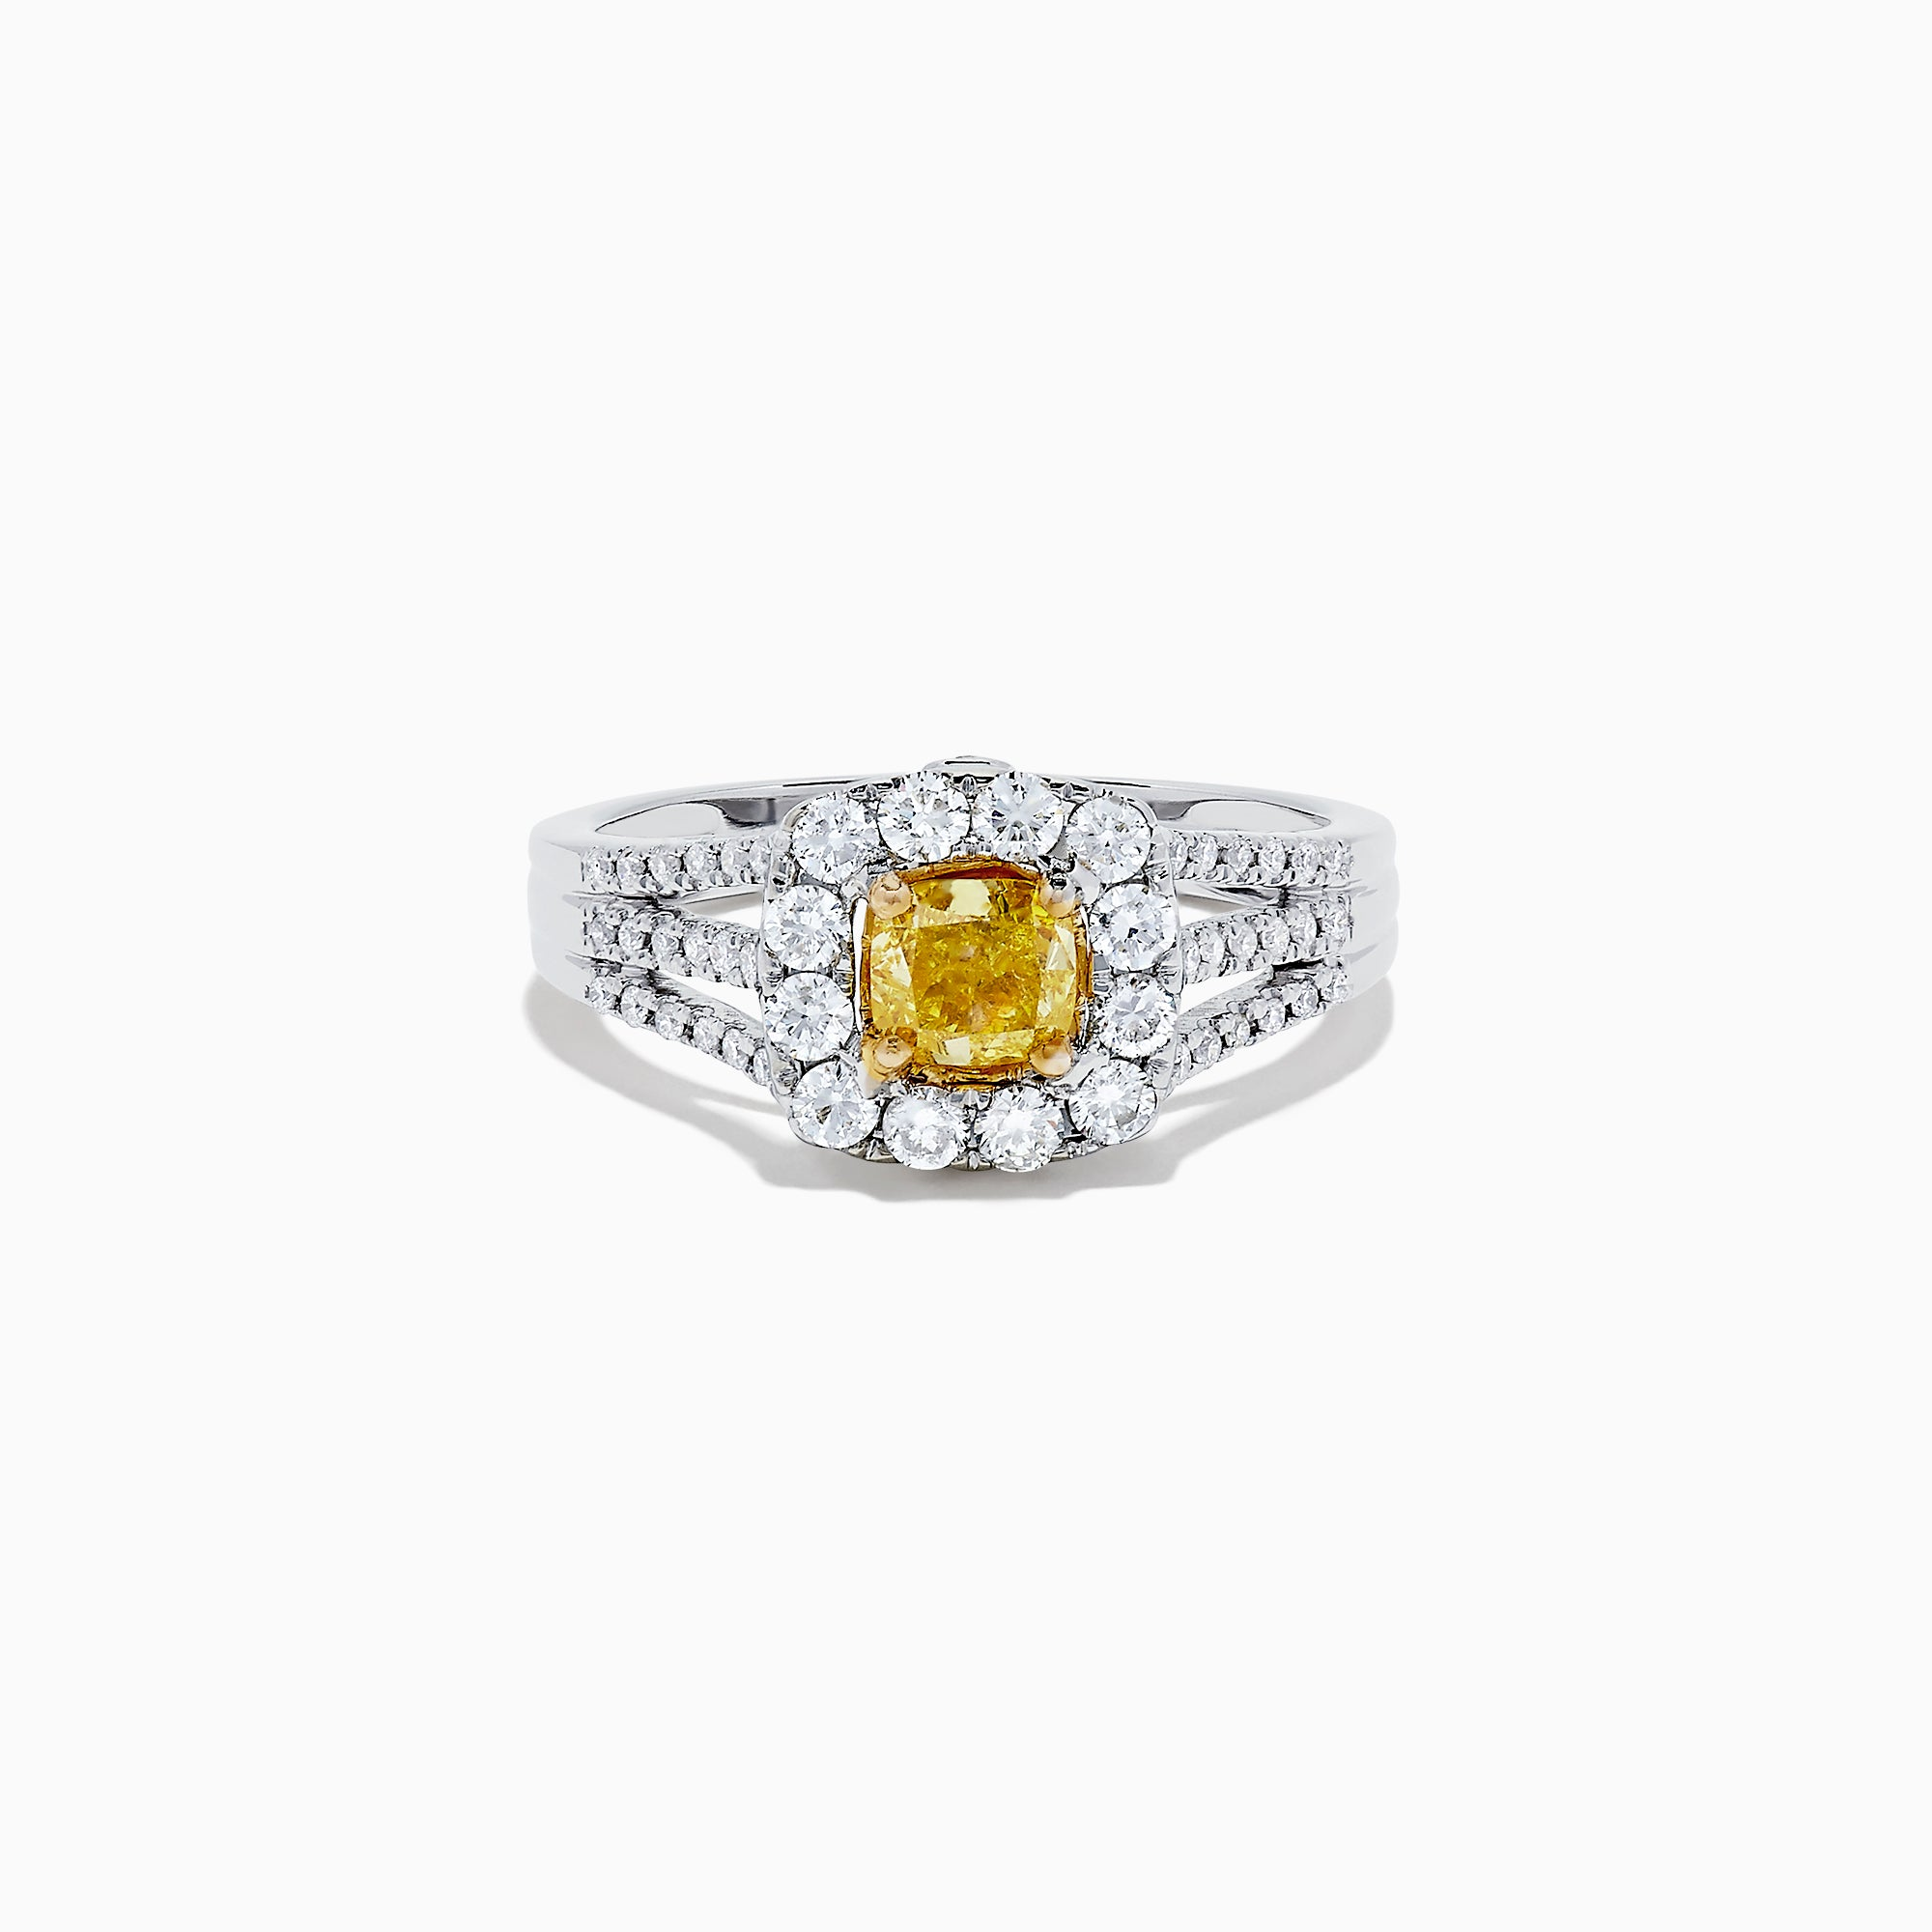 14K Two Tone Gold Yellow and White Diamond Ring, 1.22 TCW